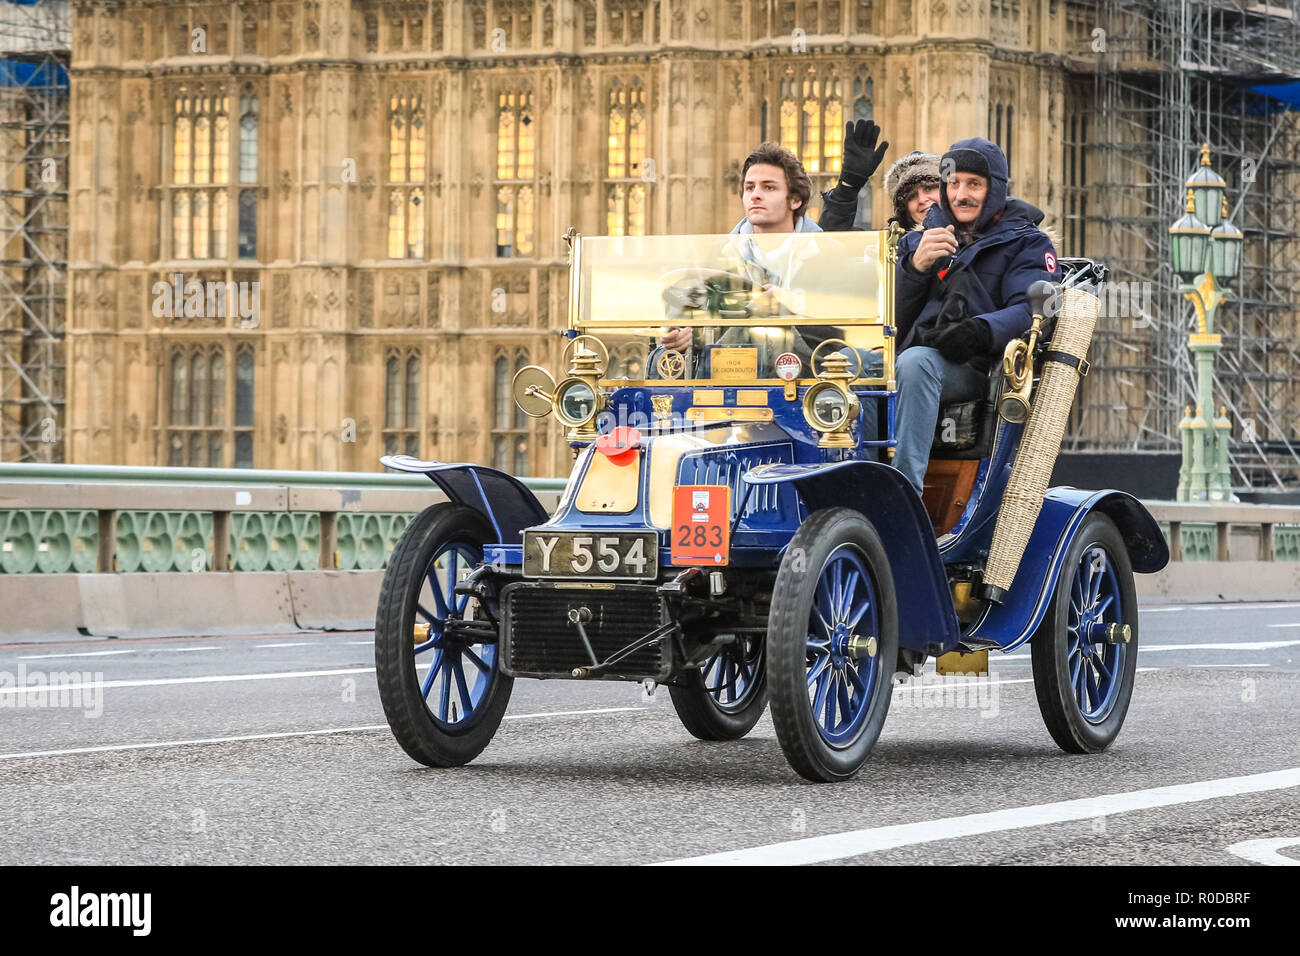 Westminster Bridge, London, UK, 4th Nov 2018. The World's longest running motoring event, Bonhams London to Brighton Veteran Car Run, sets of from Hyde Park and along Constitution Hill by Buckingham Palace, the Mall and Admiralty Arch, then along a 60 mile route all the way to Brighton. It is this year in its 122nd anniversary run. More than 400 of the veteran cars are from the pre-1905 era. Credit: Imageplotter News and Sports/Alamy Live News Stock Photo